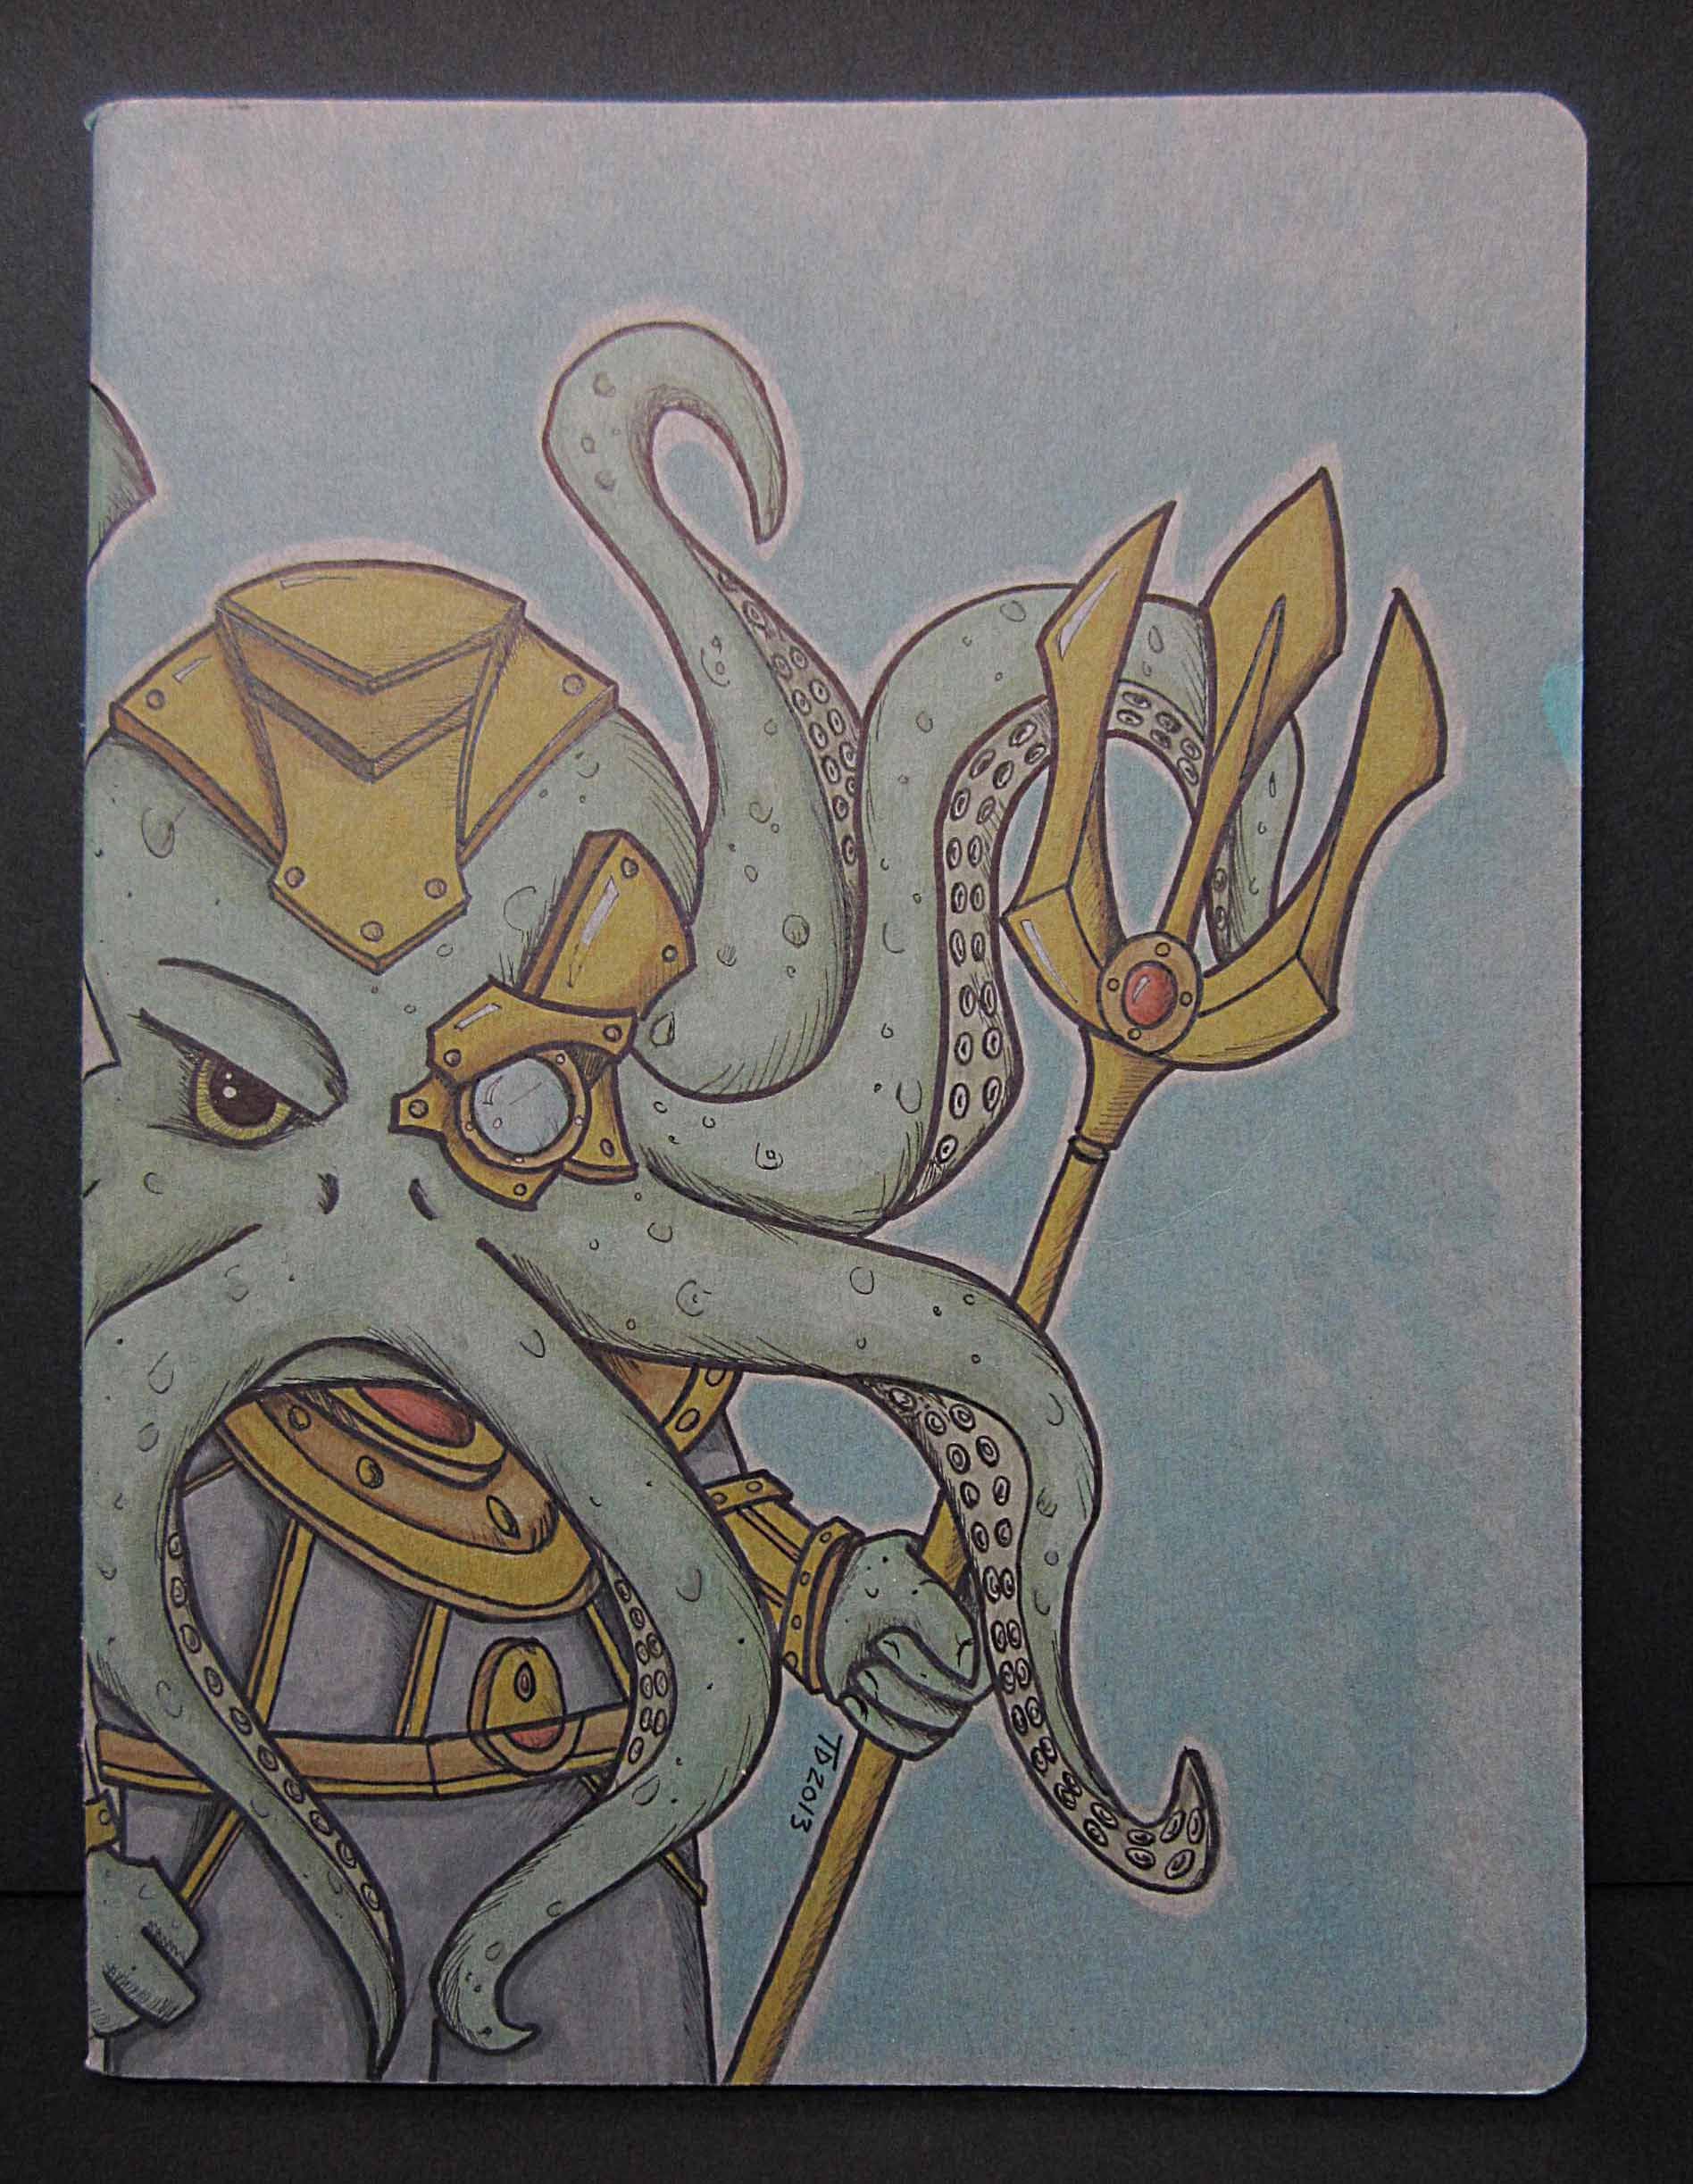 This is a hand illustrated Moleskine Cahier blank journal/sketchbook. There are no lines. This was done in ink and prismacolor marker. This is an original character of mine.